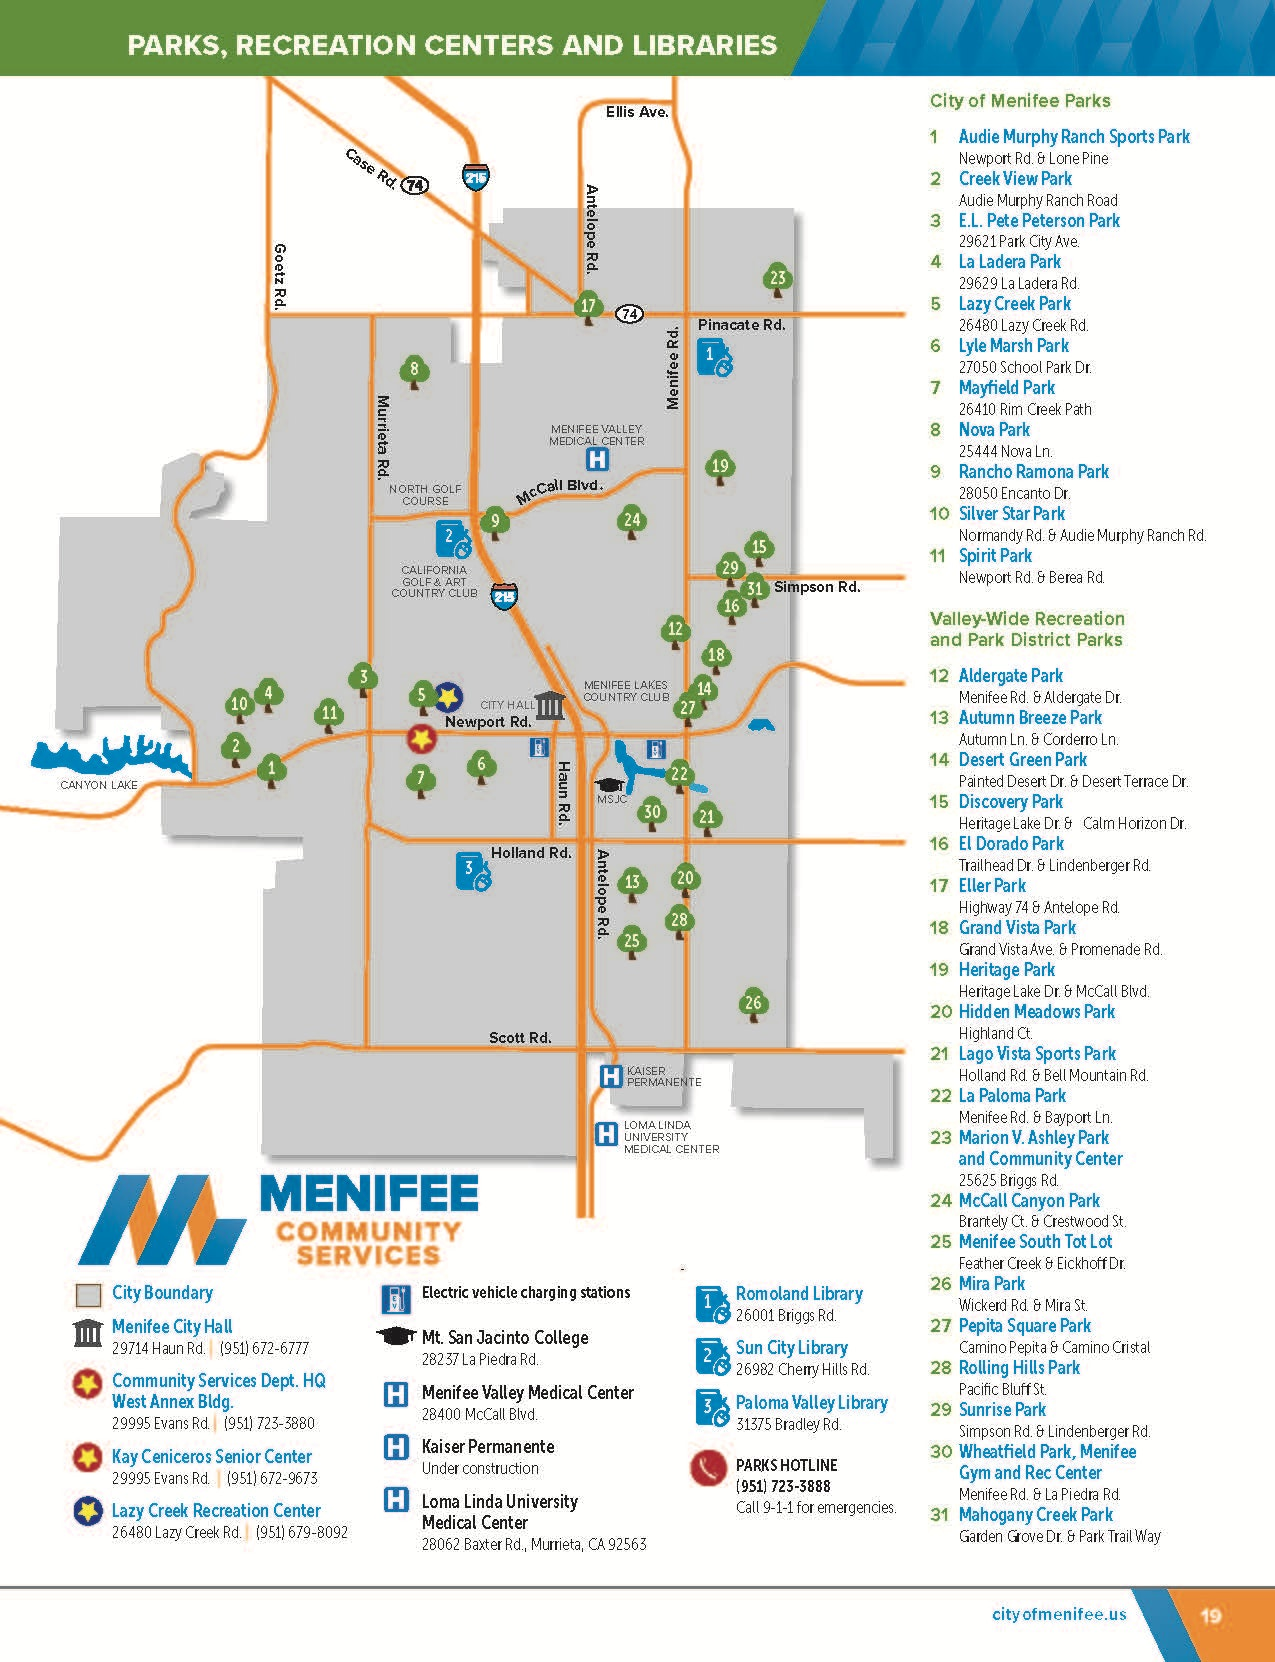 Map that indicates which parks are managed by City of Menifee versus those managed by Valley-Wide Recreation and Park District